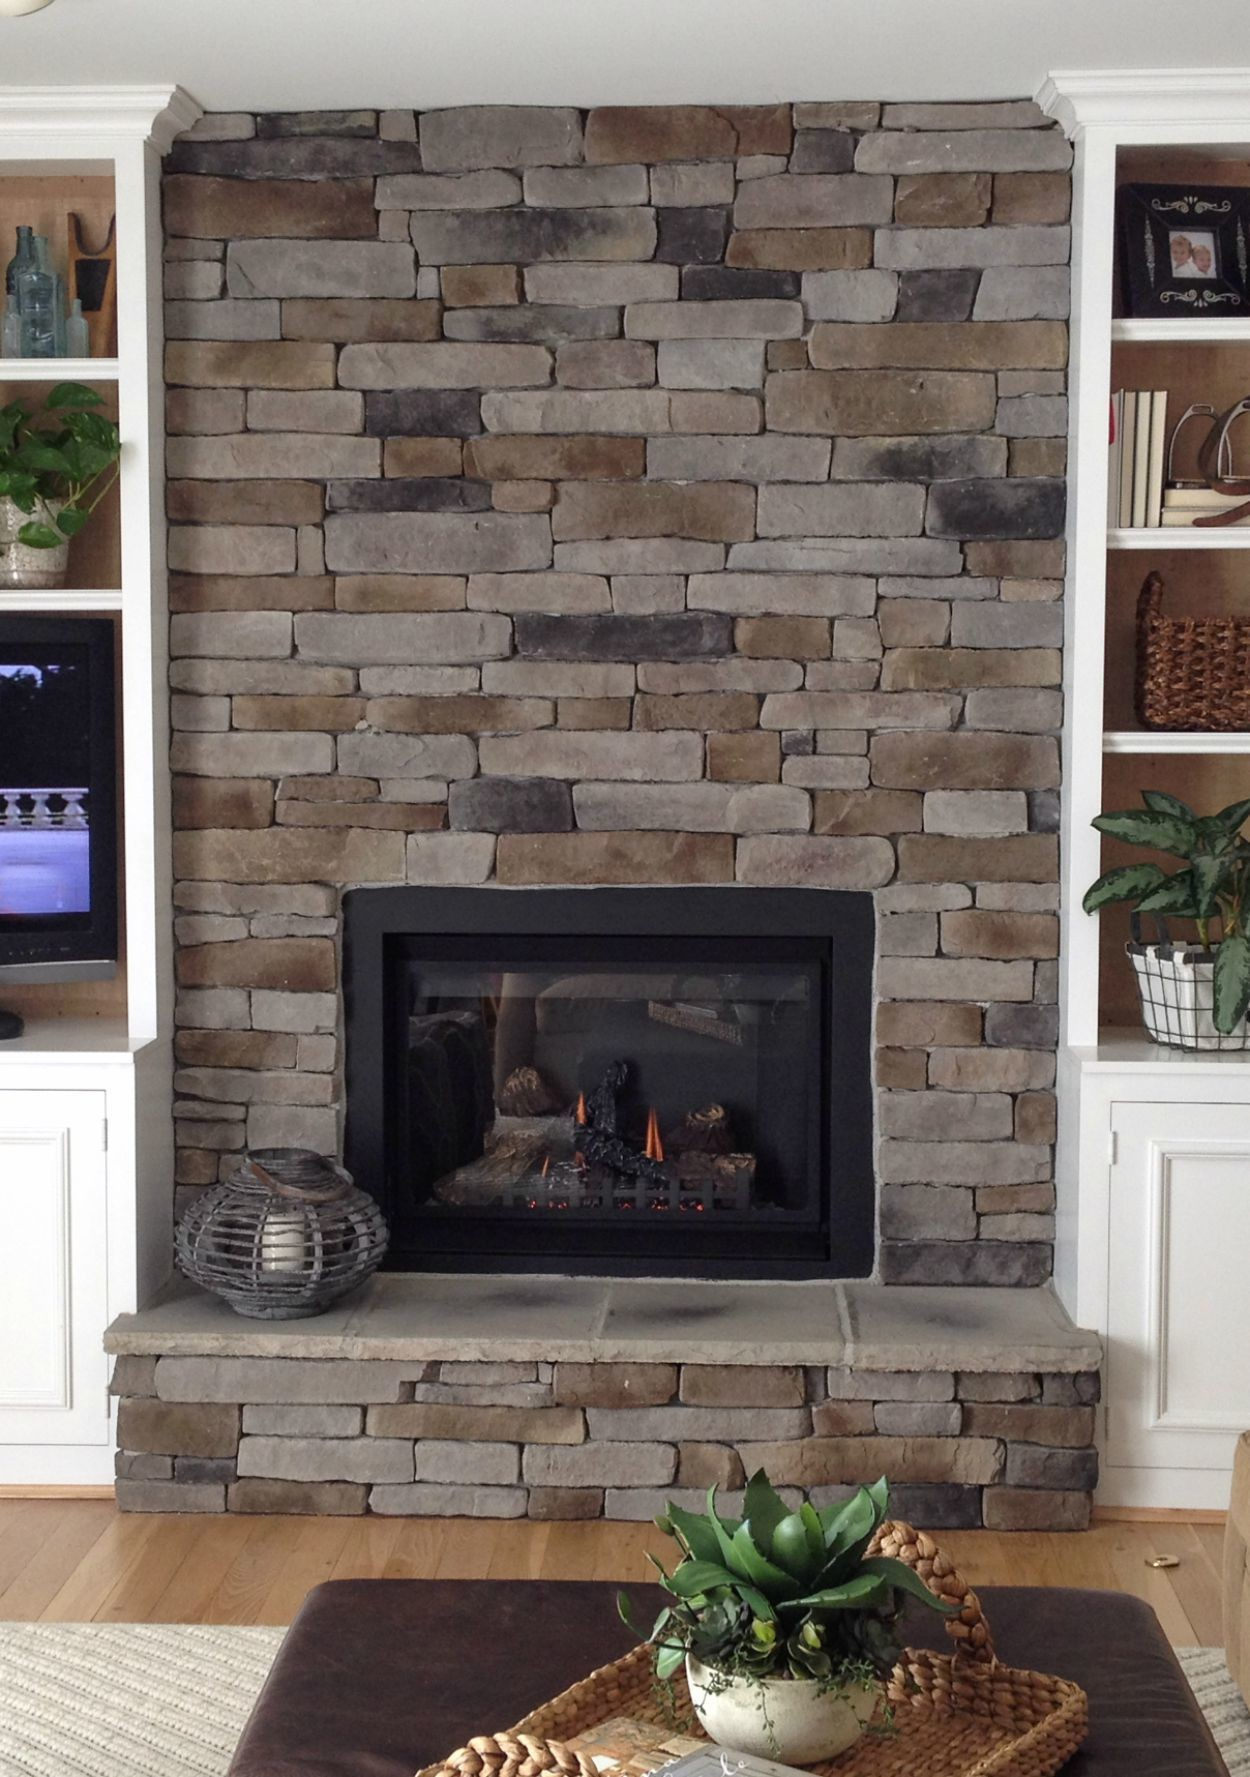 How to Create the Stacked Stone Fireplace Look on a Budget | Martha Stewart